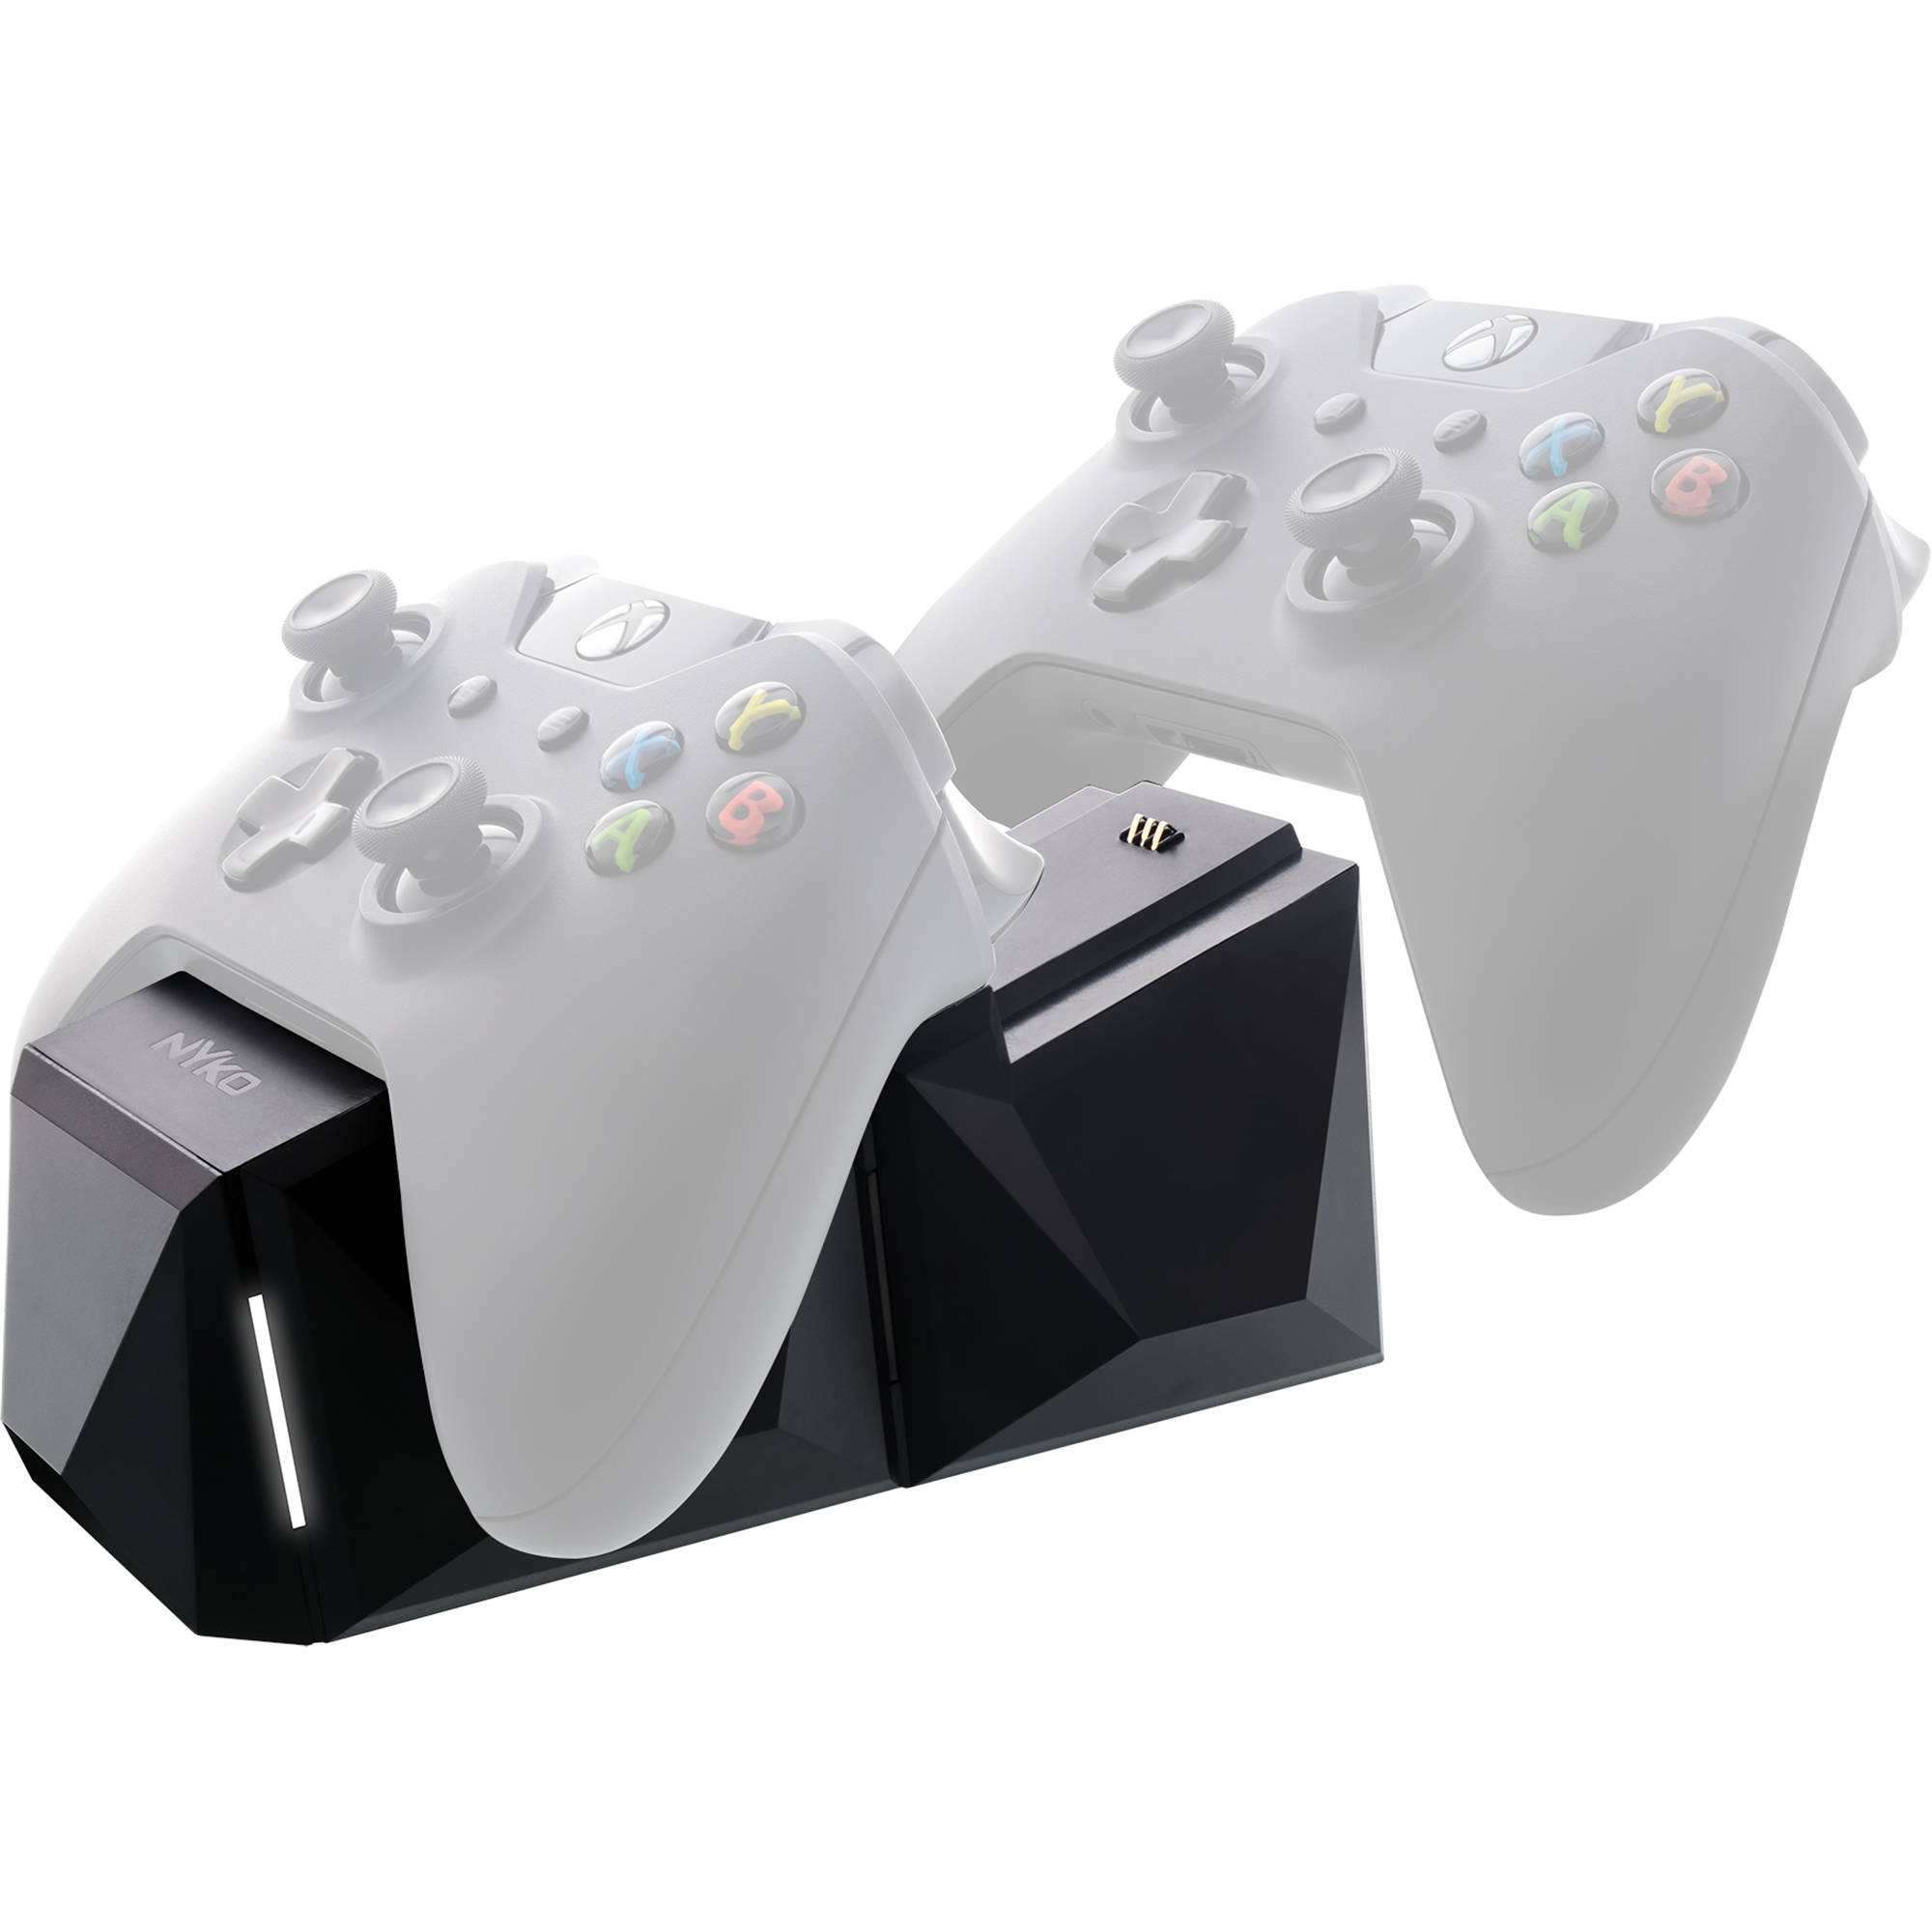 Nyko Charge Block Duo for Xbox One Controller (Black)